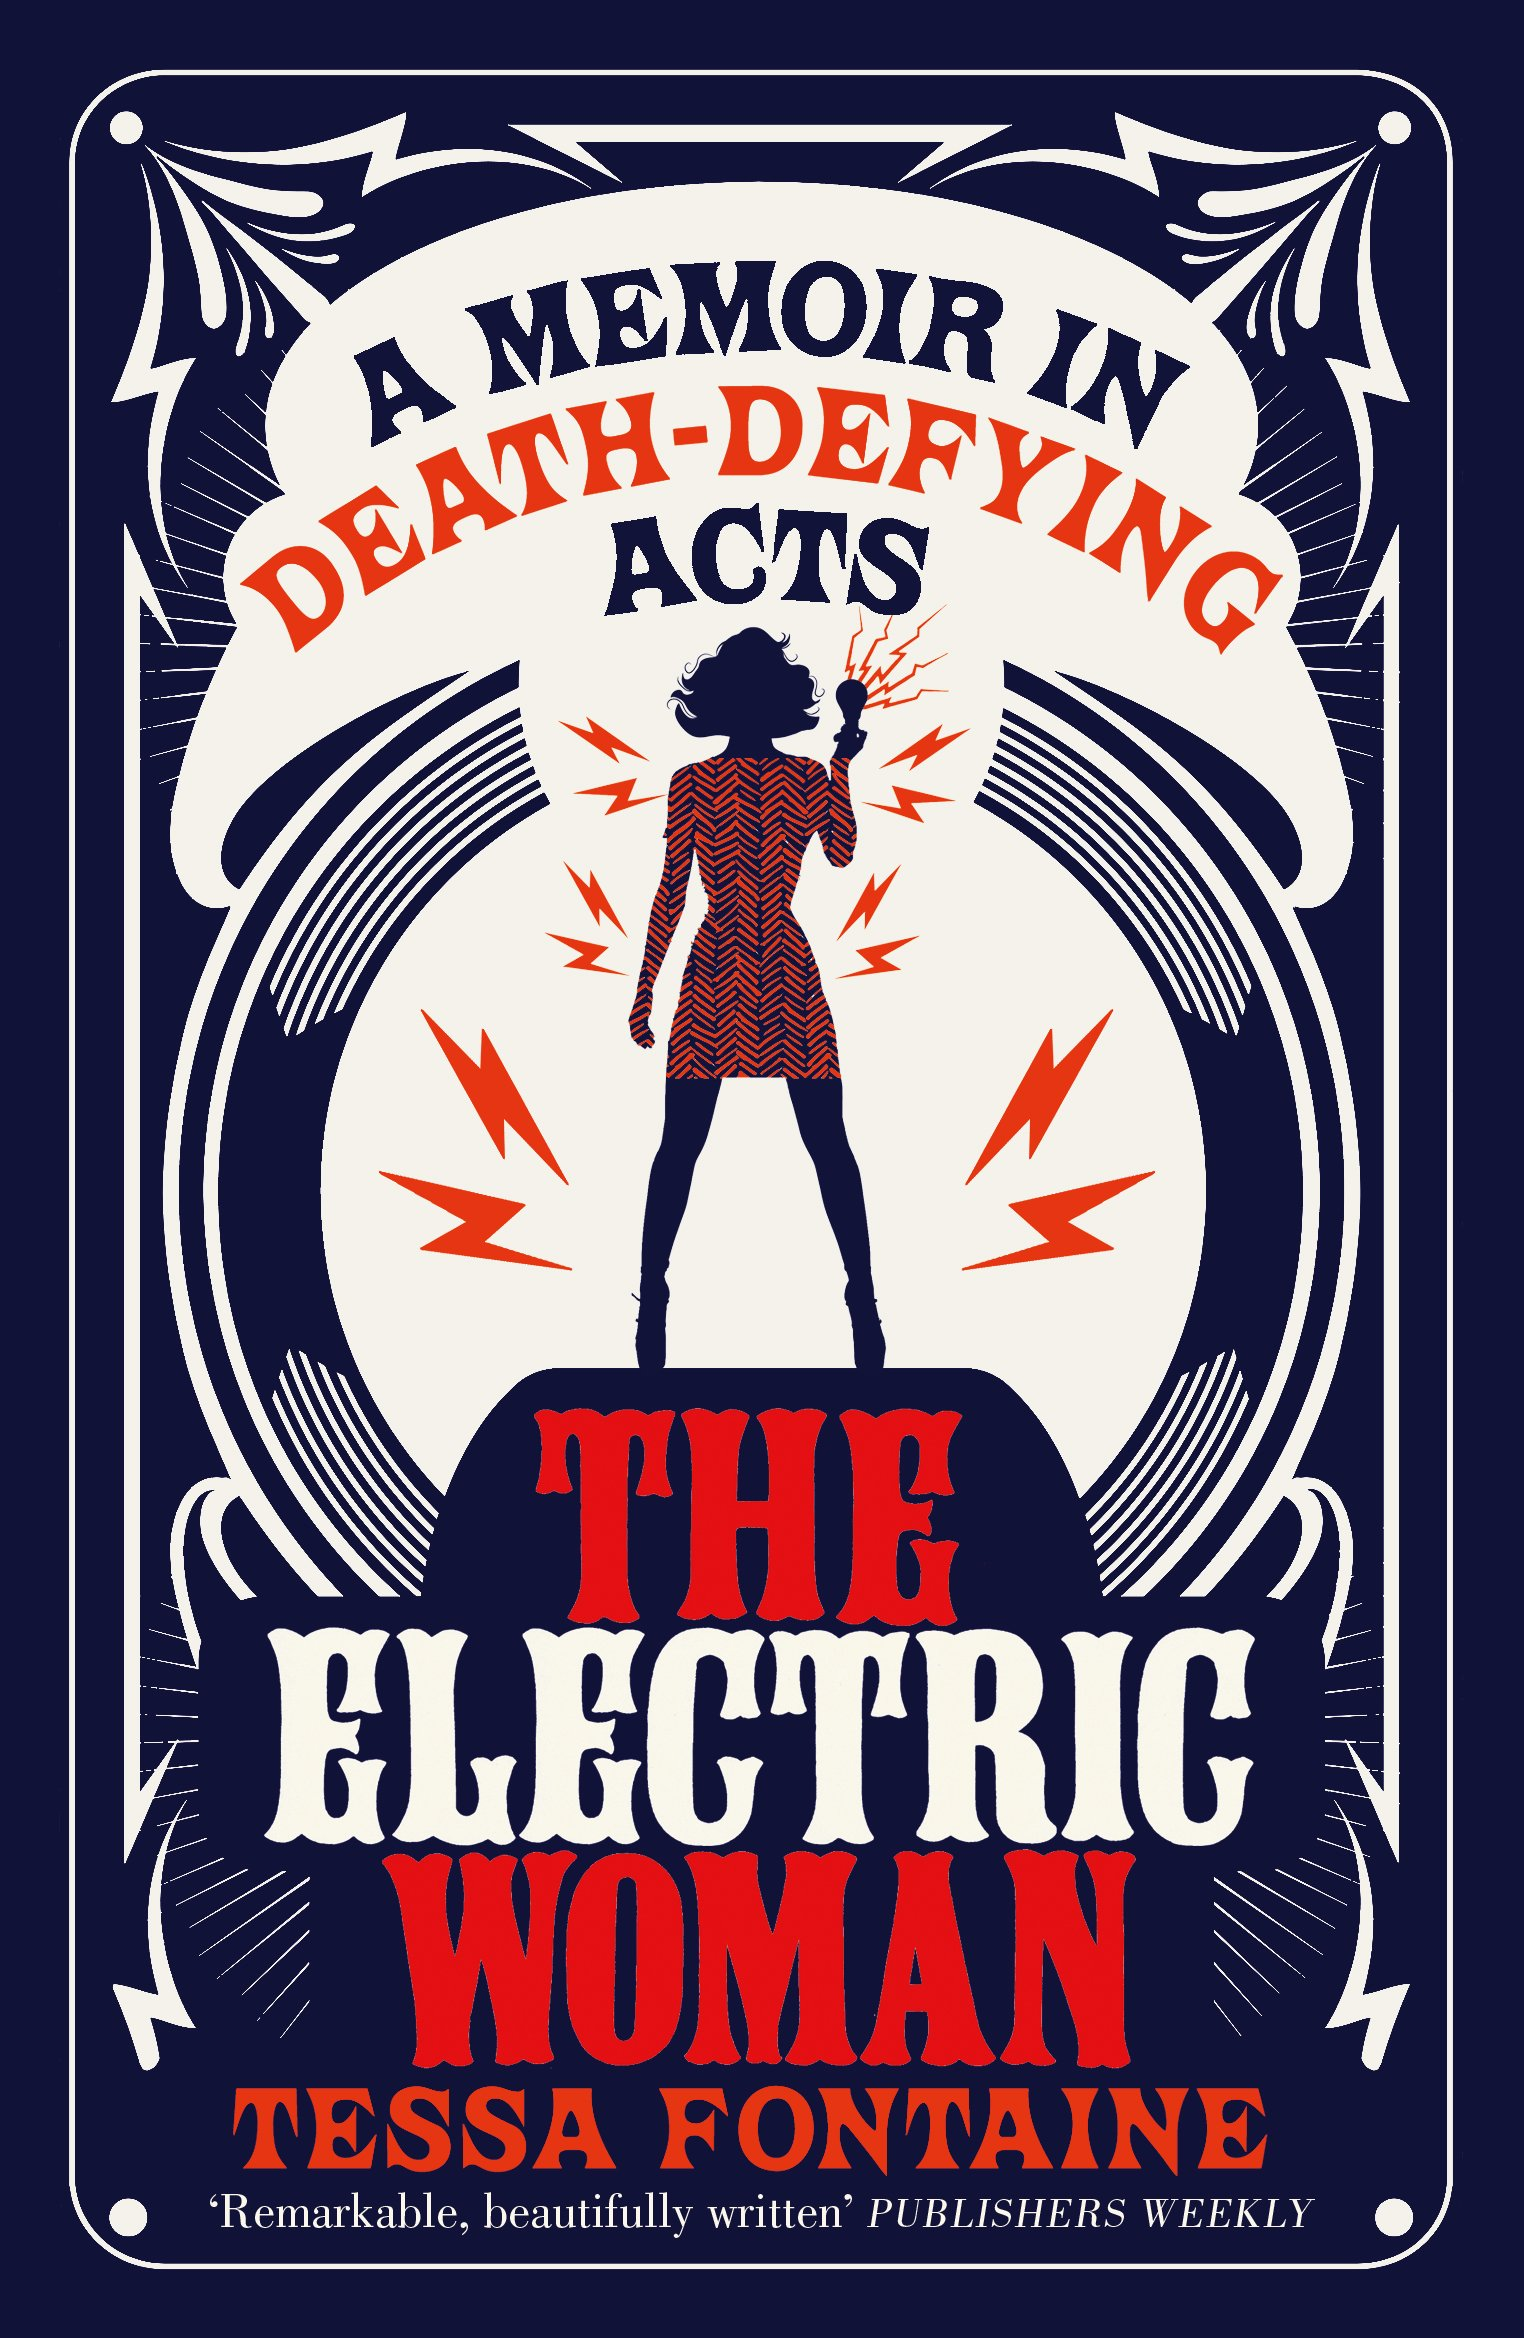 Image OfThe Electric Woman: A Memoir In Death-Defying Acts